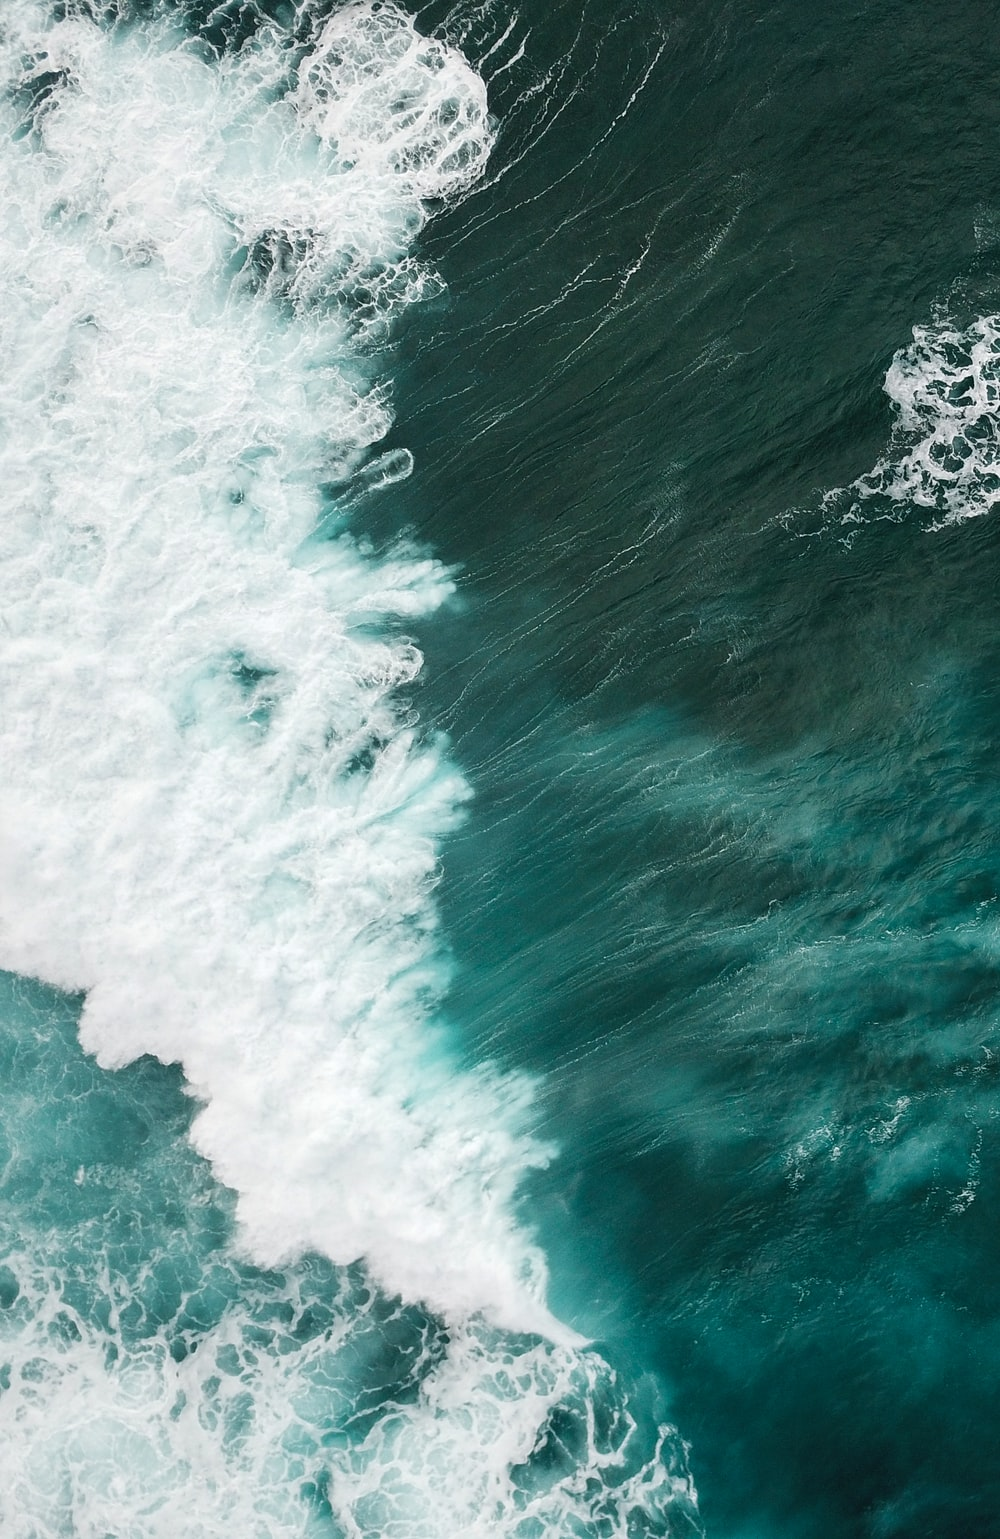 aerial shot of water waves